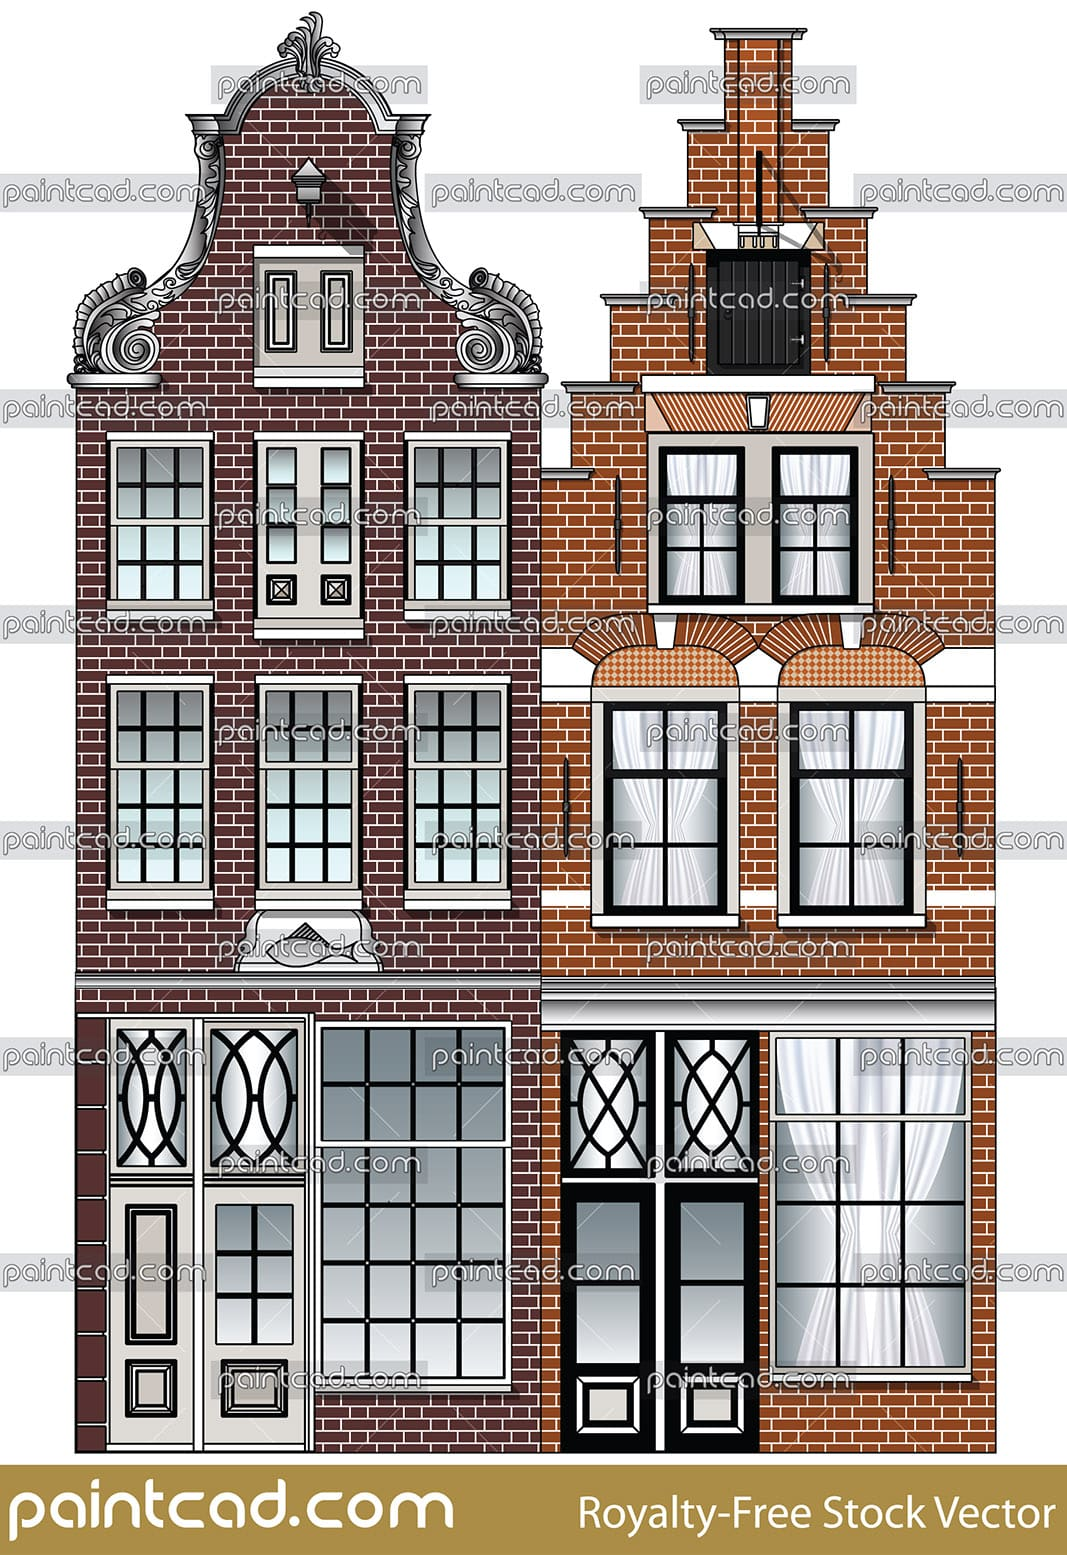 Facades of old canal houses from Amsterdam city, Netherlands - vector illustration